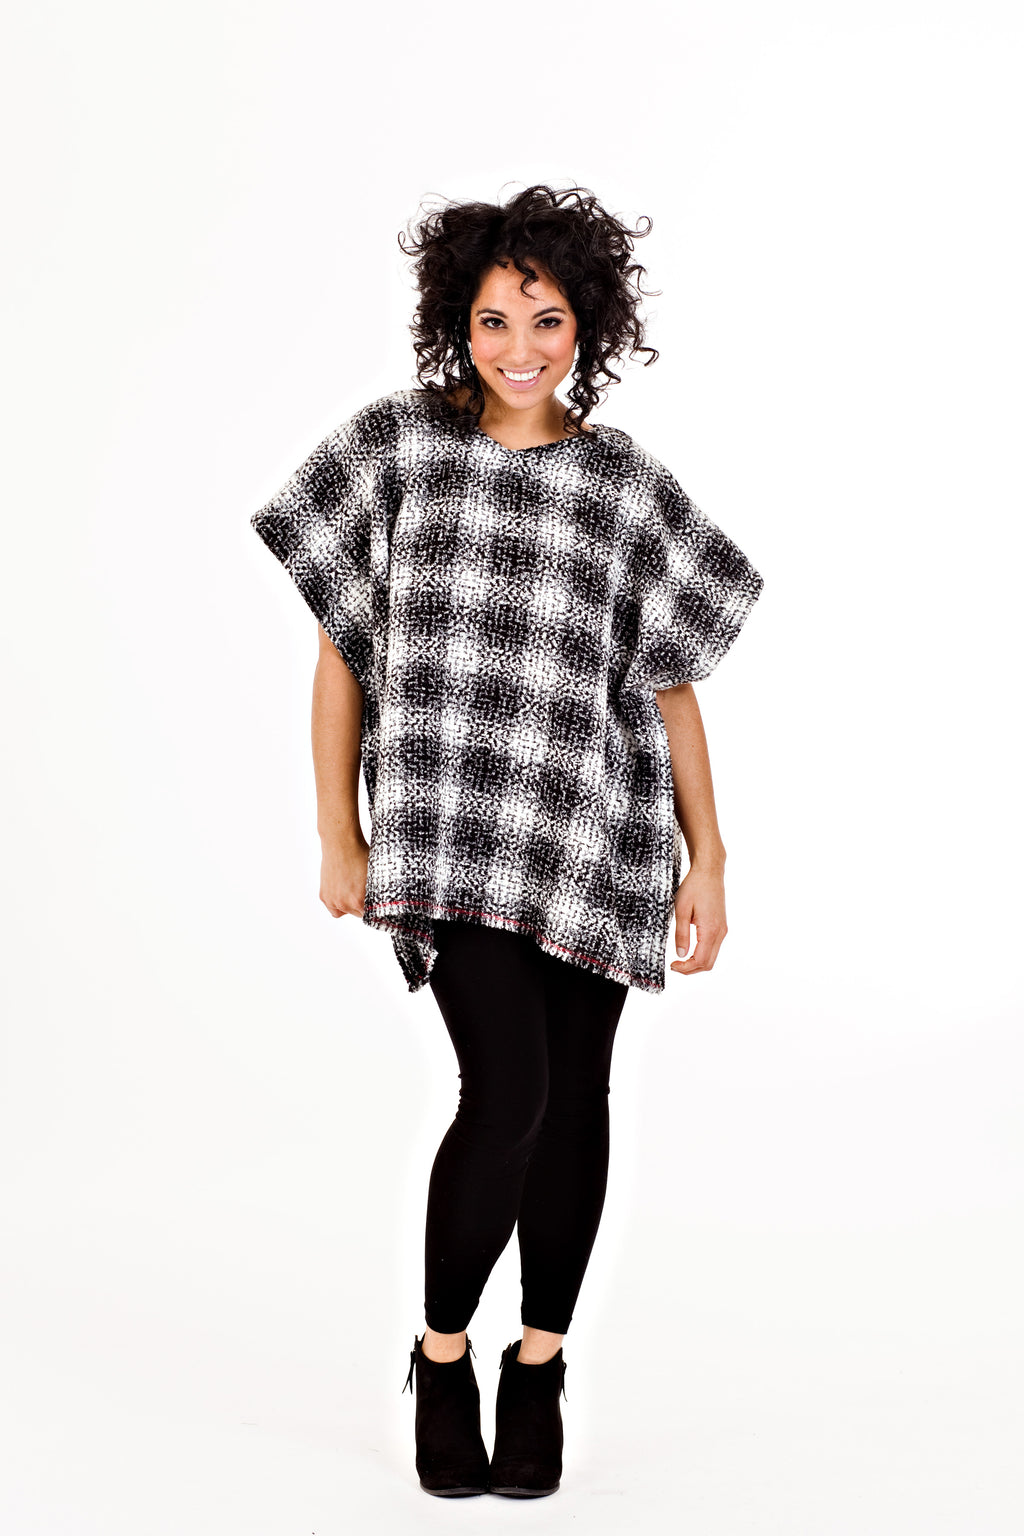 Ricki Poncho - White Tweed   *70% OFF FINAL SALE